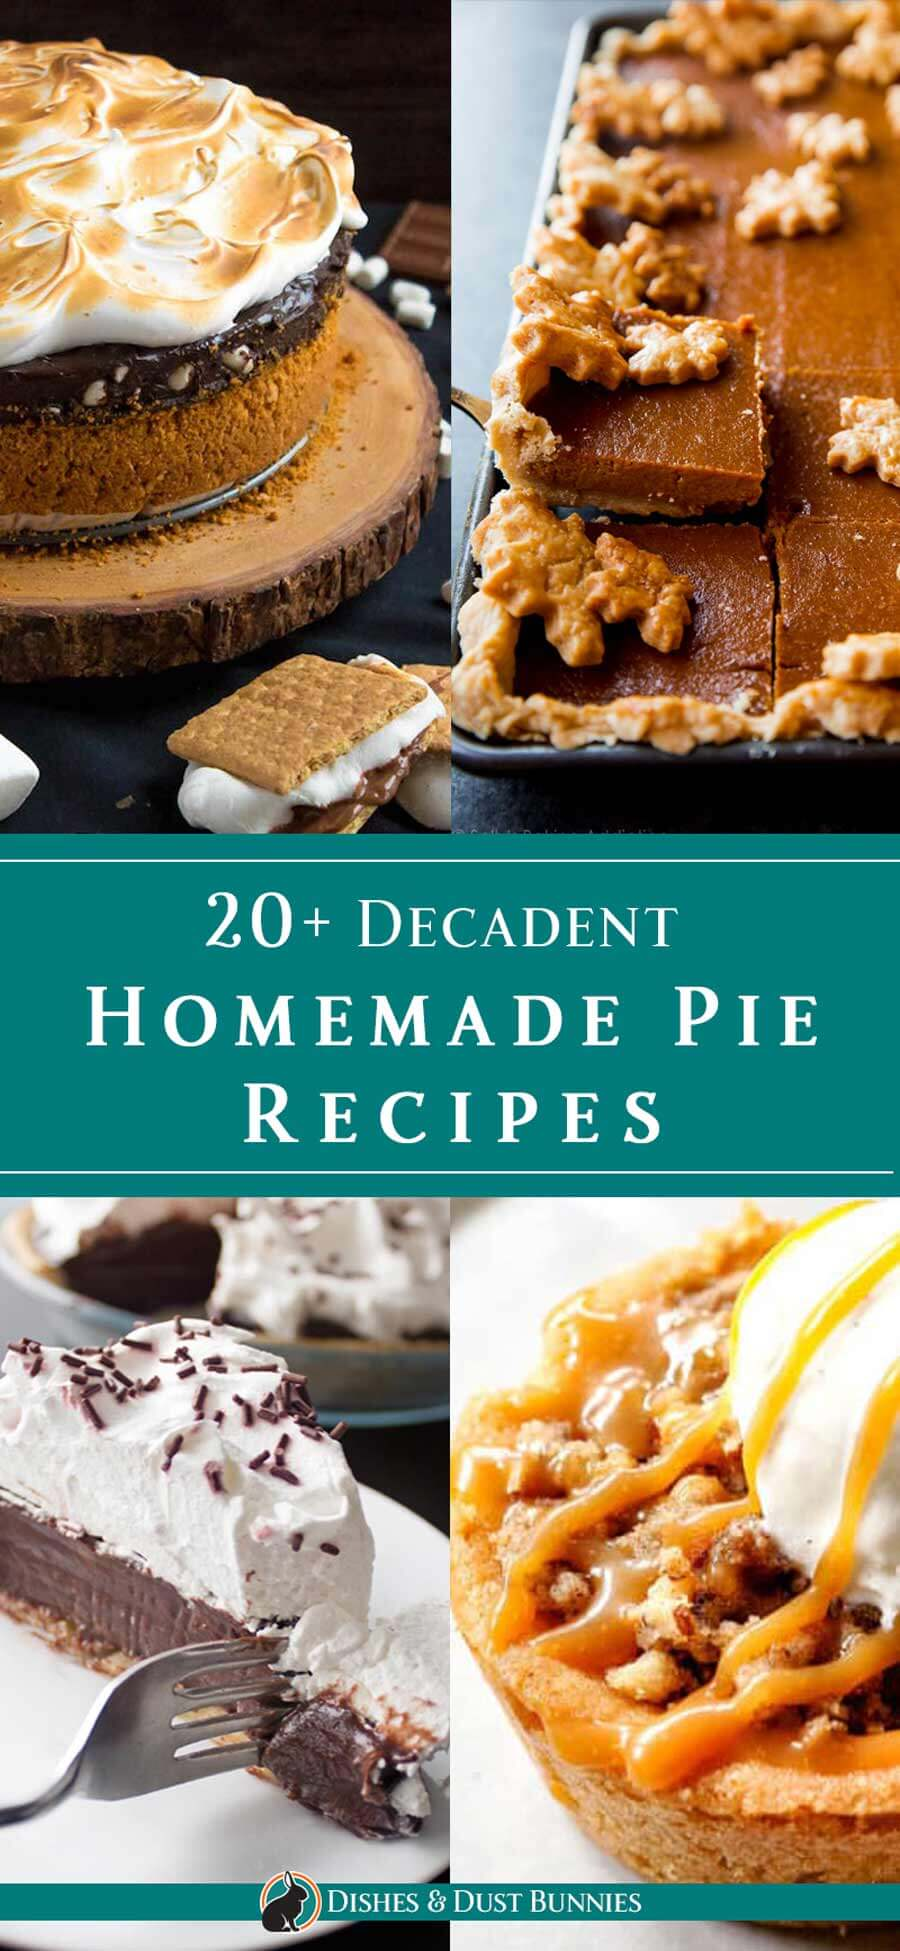 20+ Decadent Homemade Pie Recipes via @mvdustbunnies